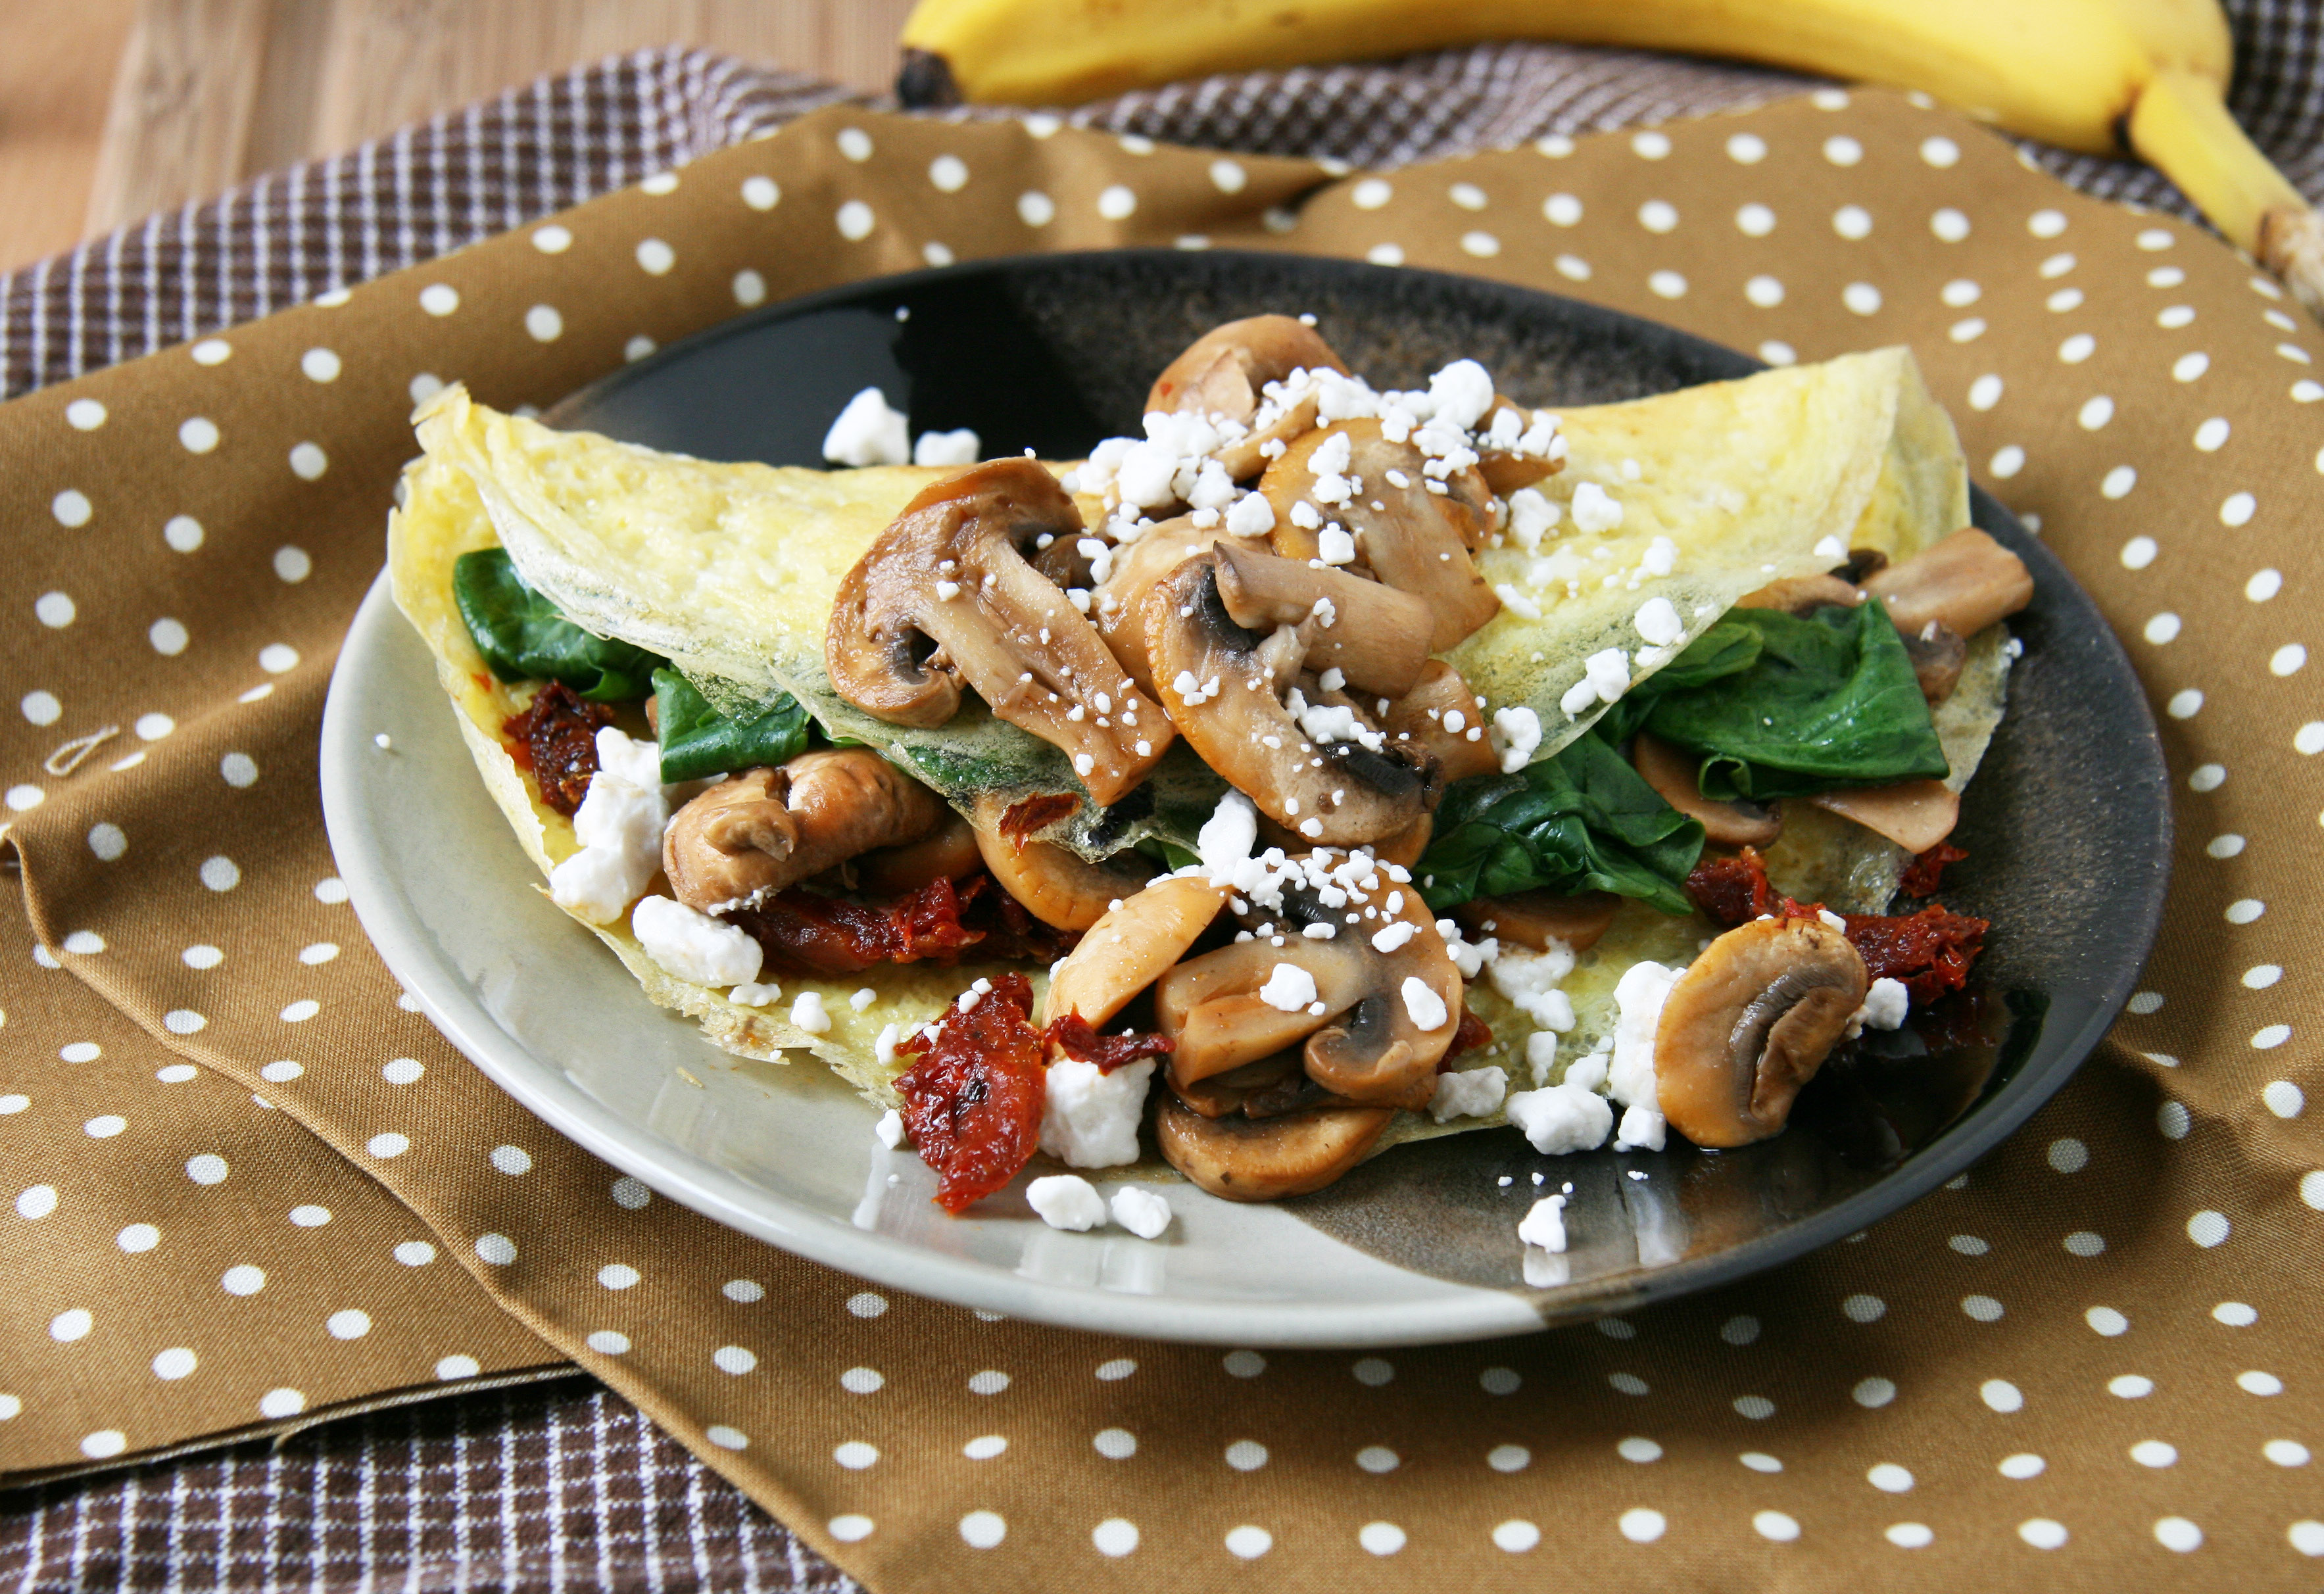 Sun-Dried Tomato, Mushroom and Goat Cheese Omelette